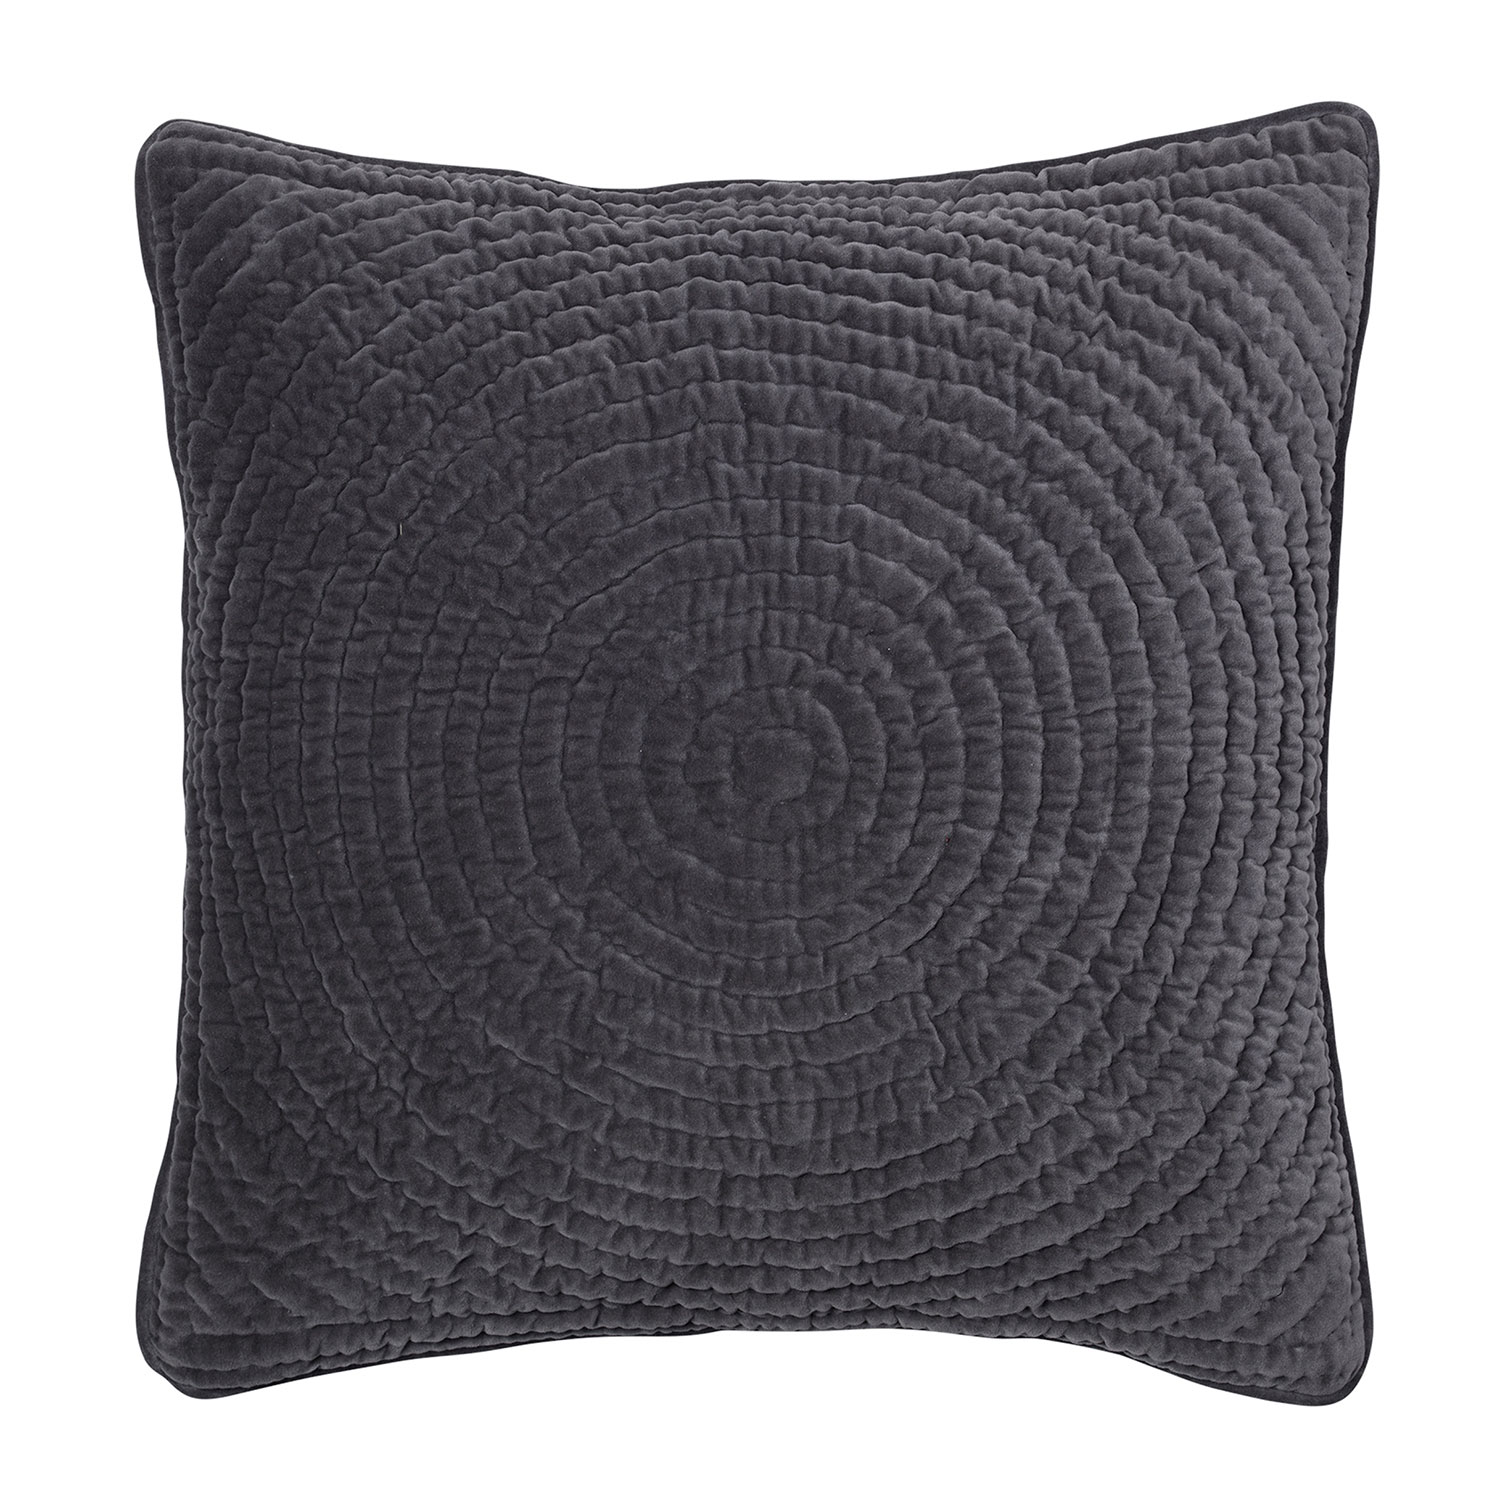 Quilt Ring Cushion Cover, Large, Dark Brown